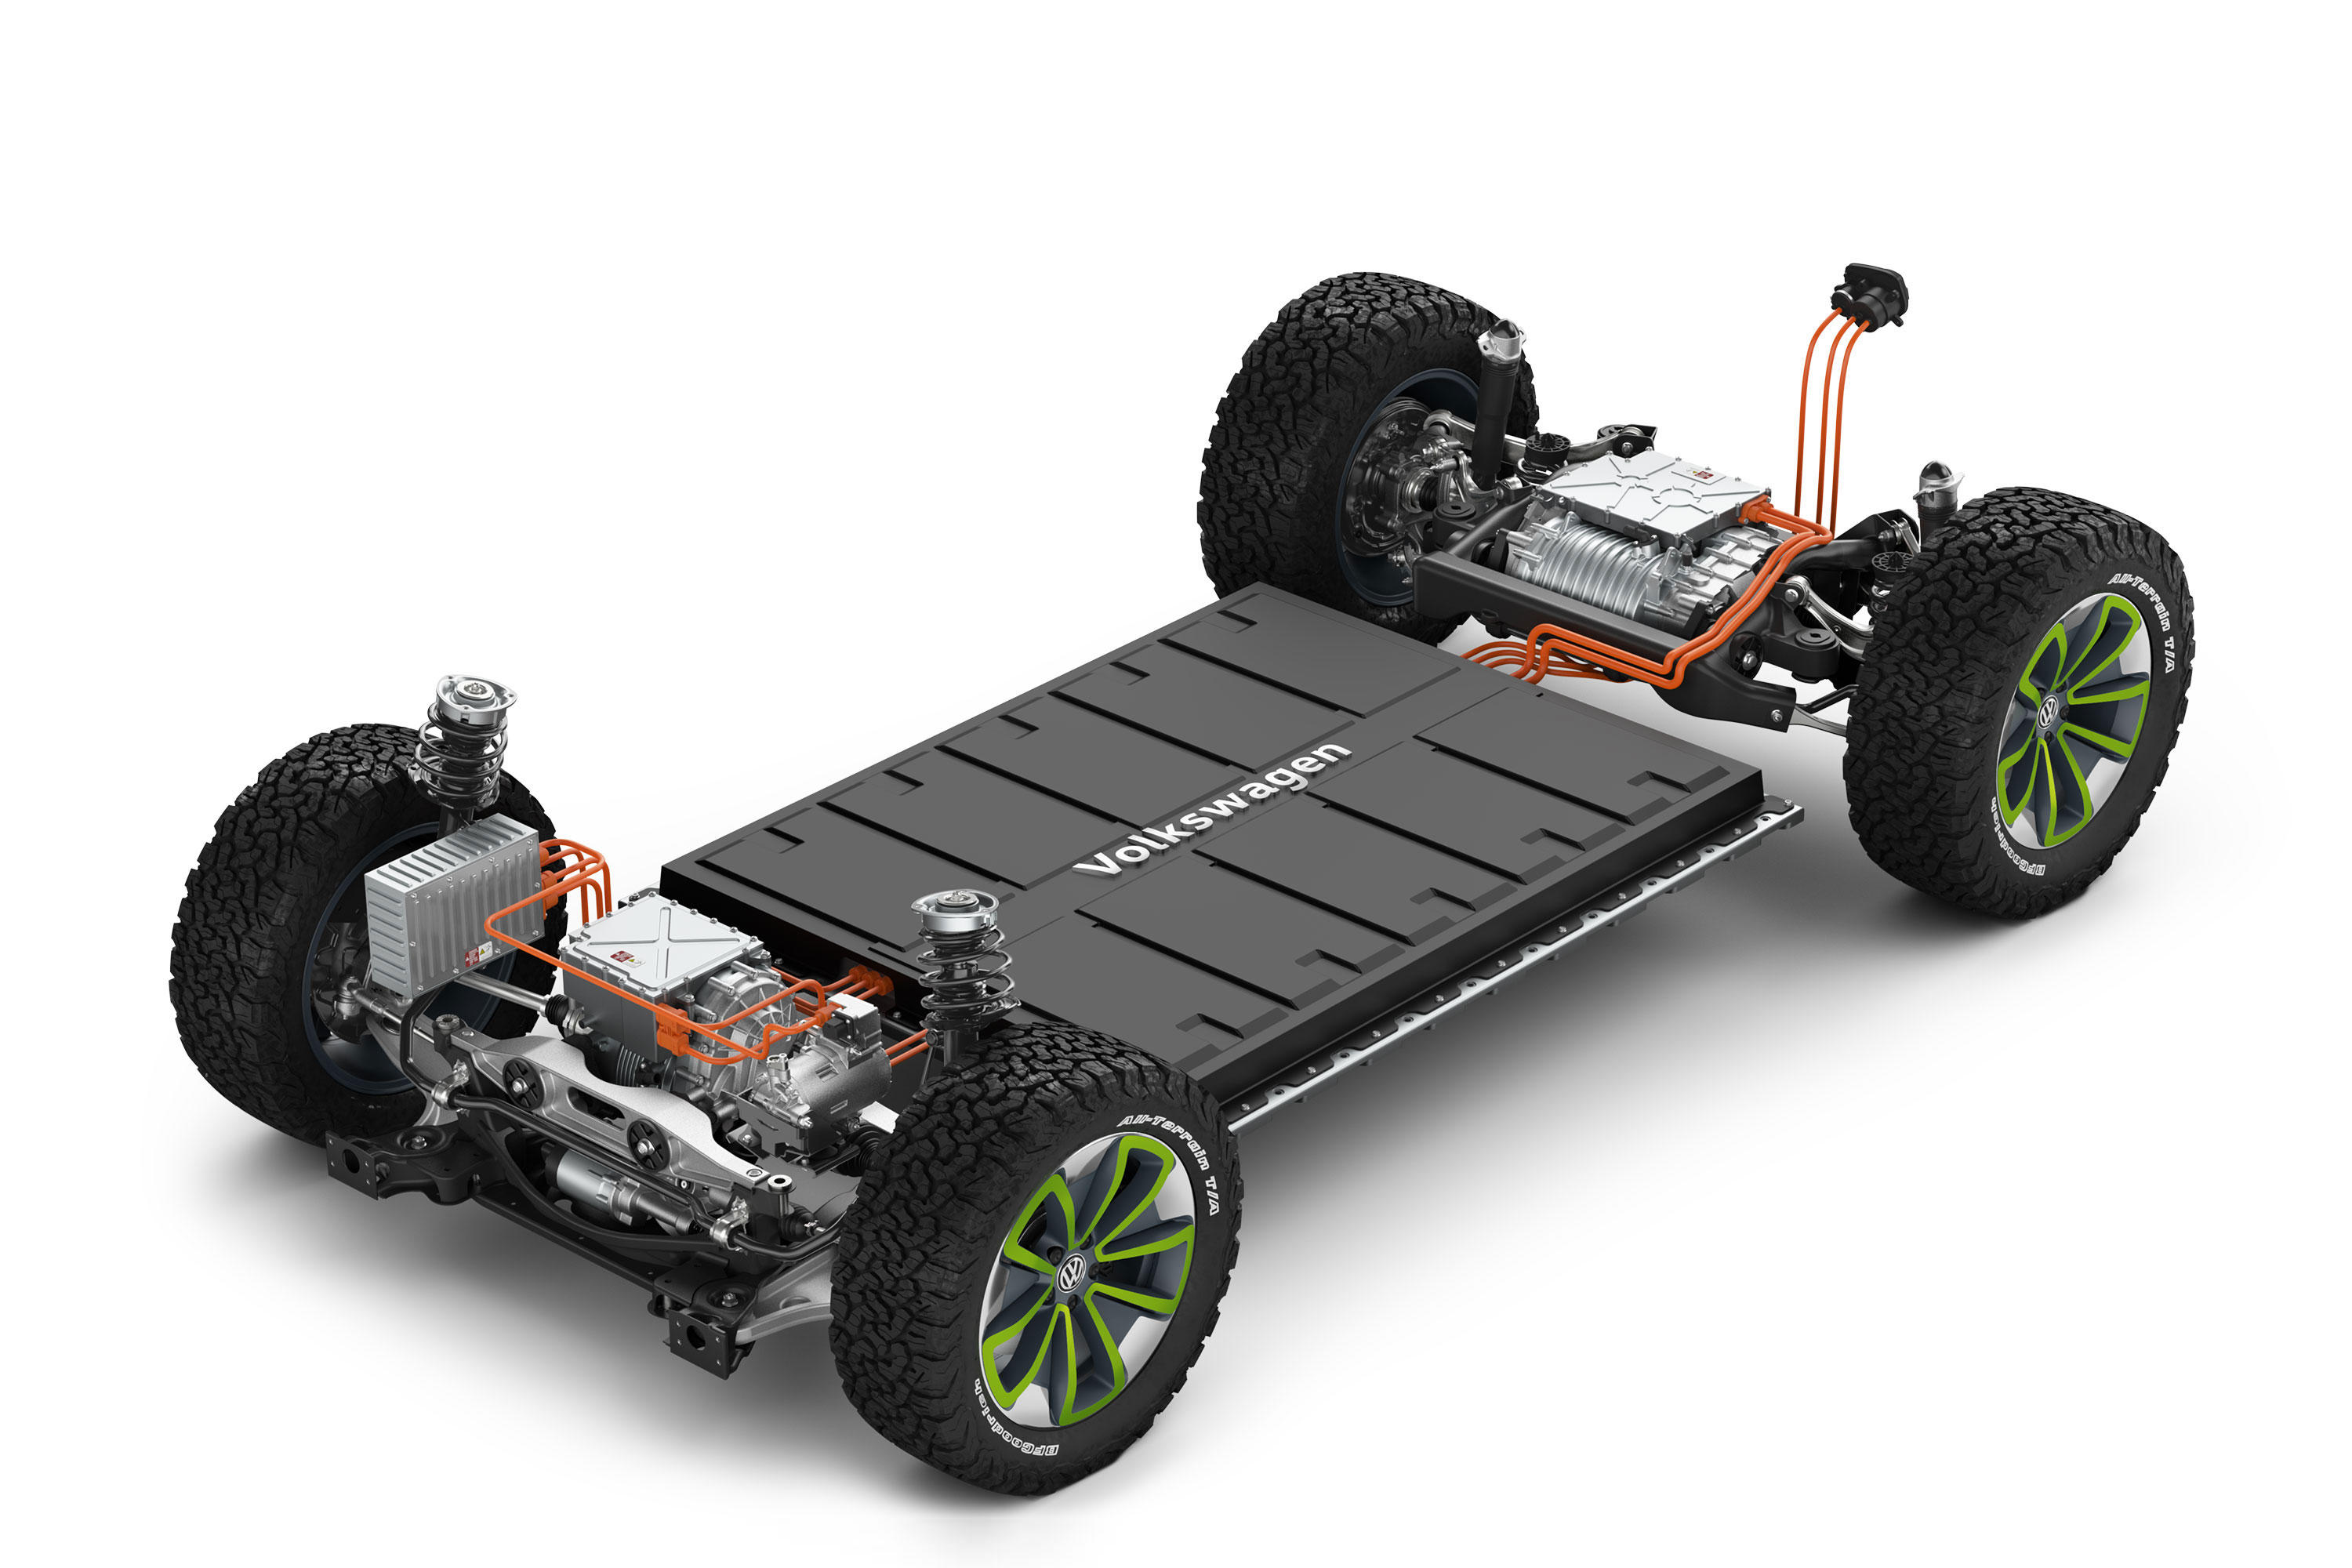 Volkswagen I.D. Buggy MEB chassis